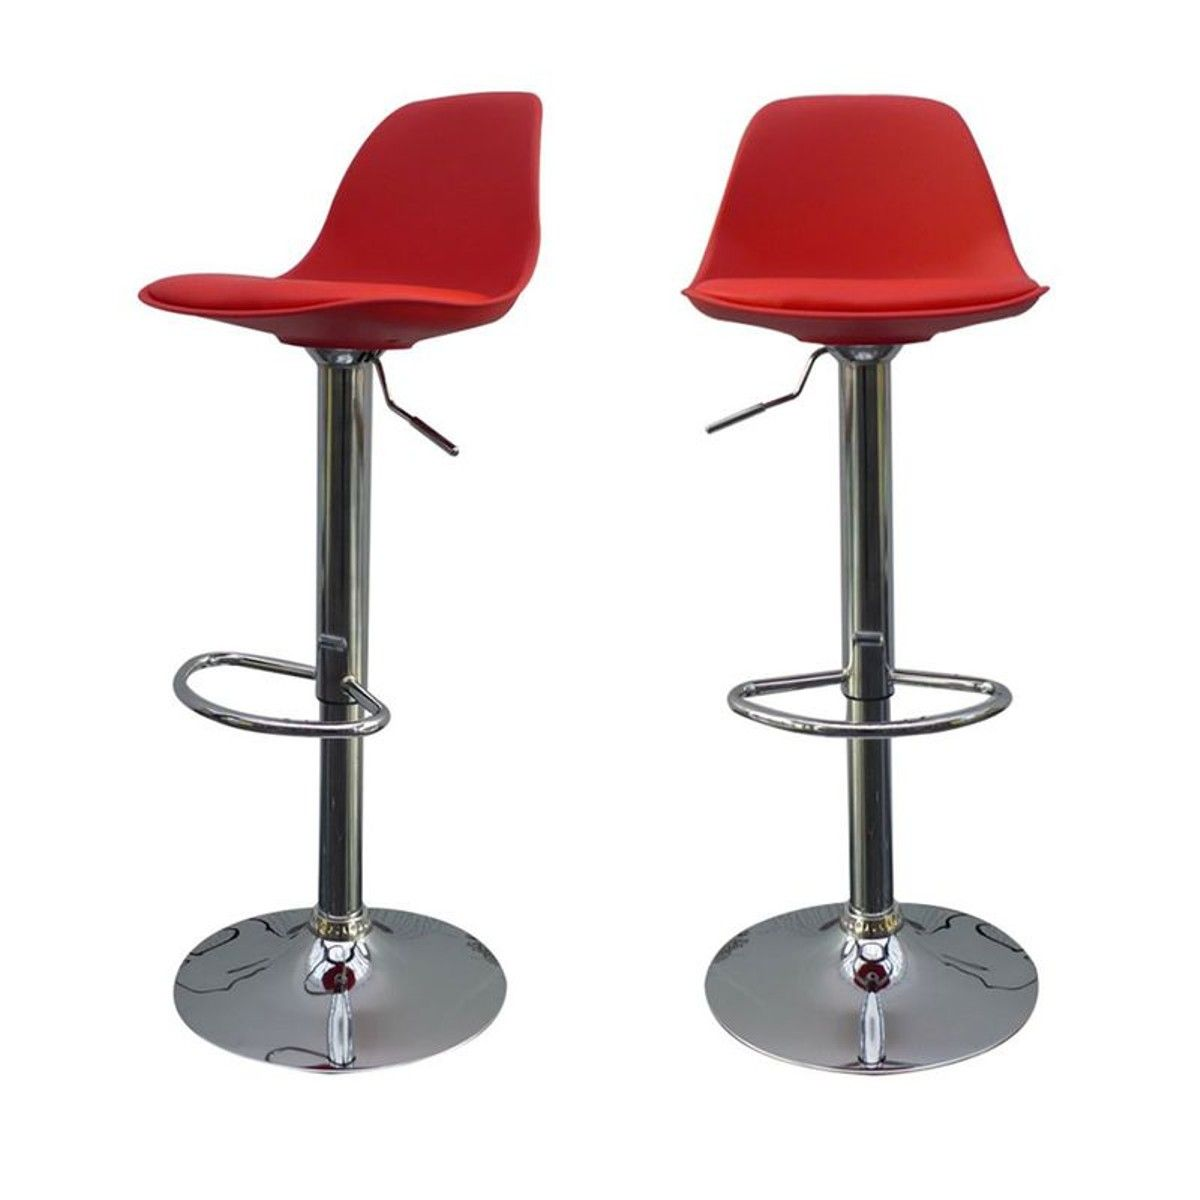 Tabourets De Bar Polypropylene Bobba 2 Tabourets De Bar Design Ideas For The House